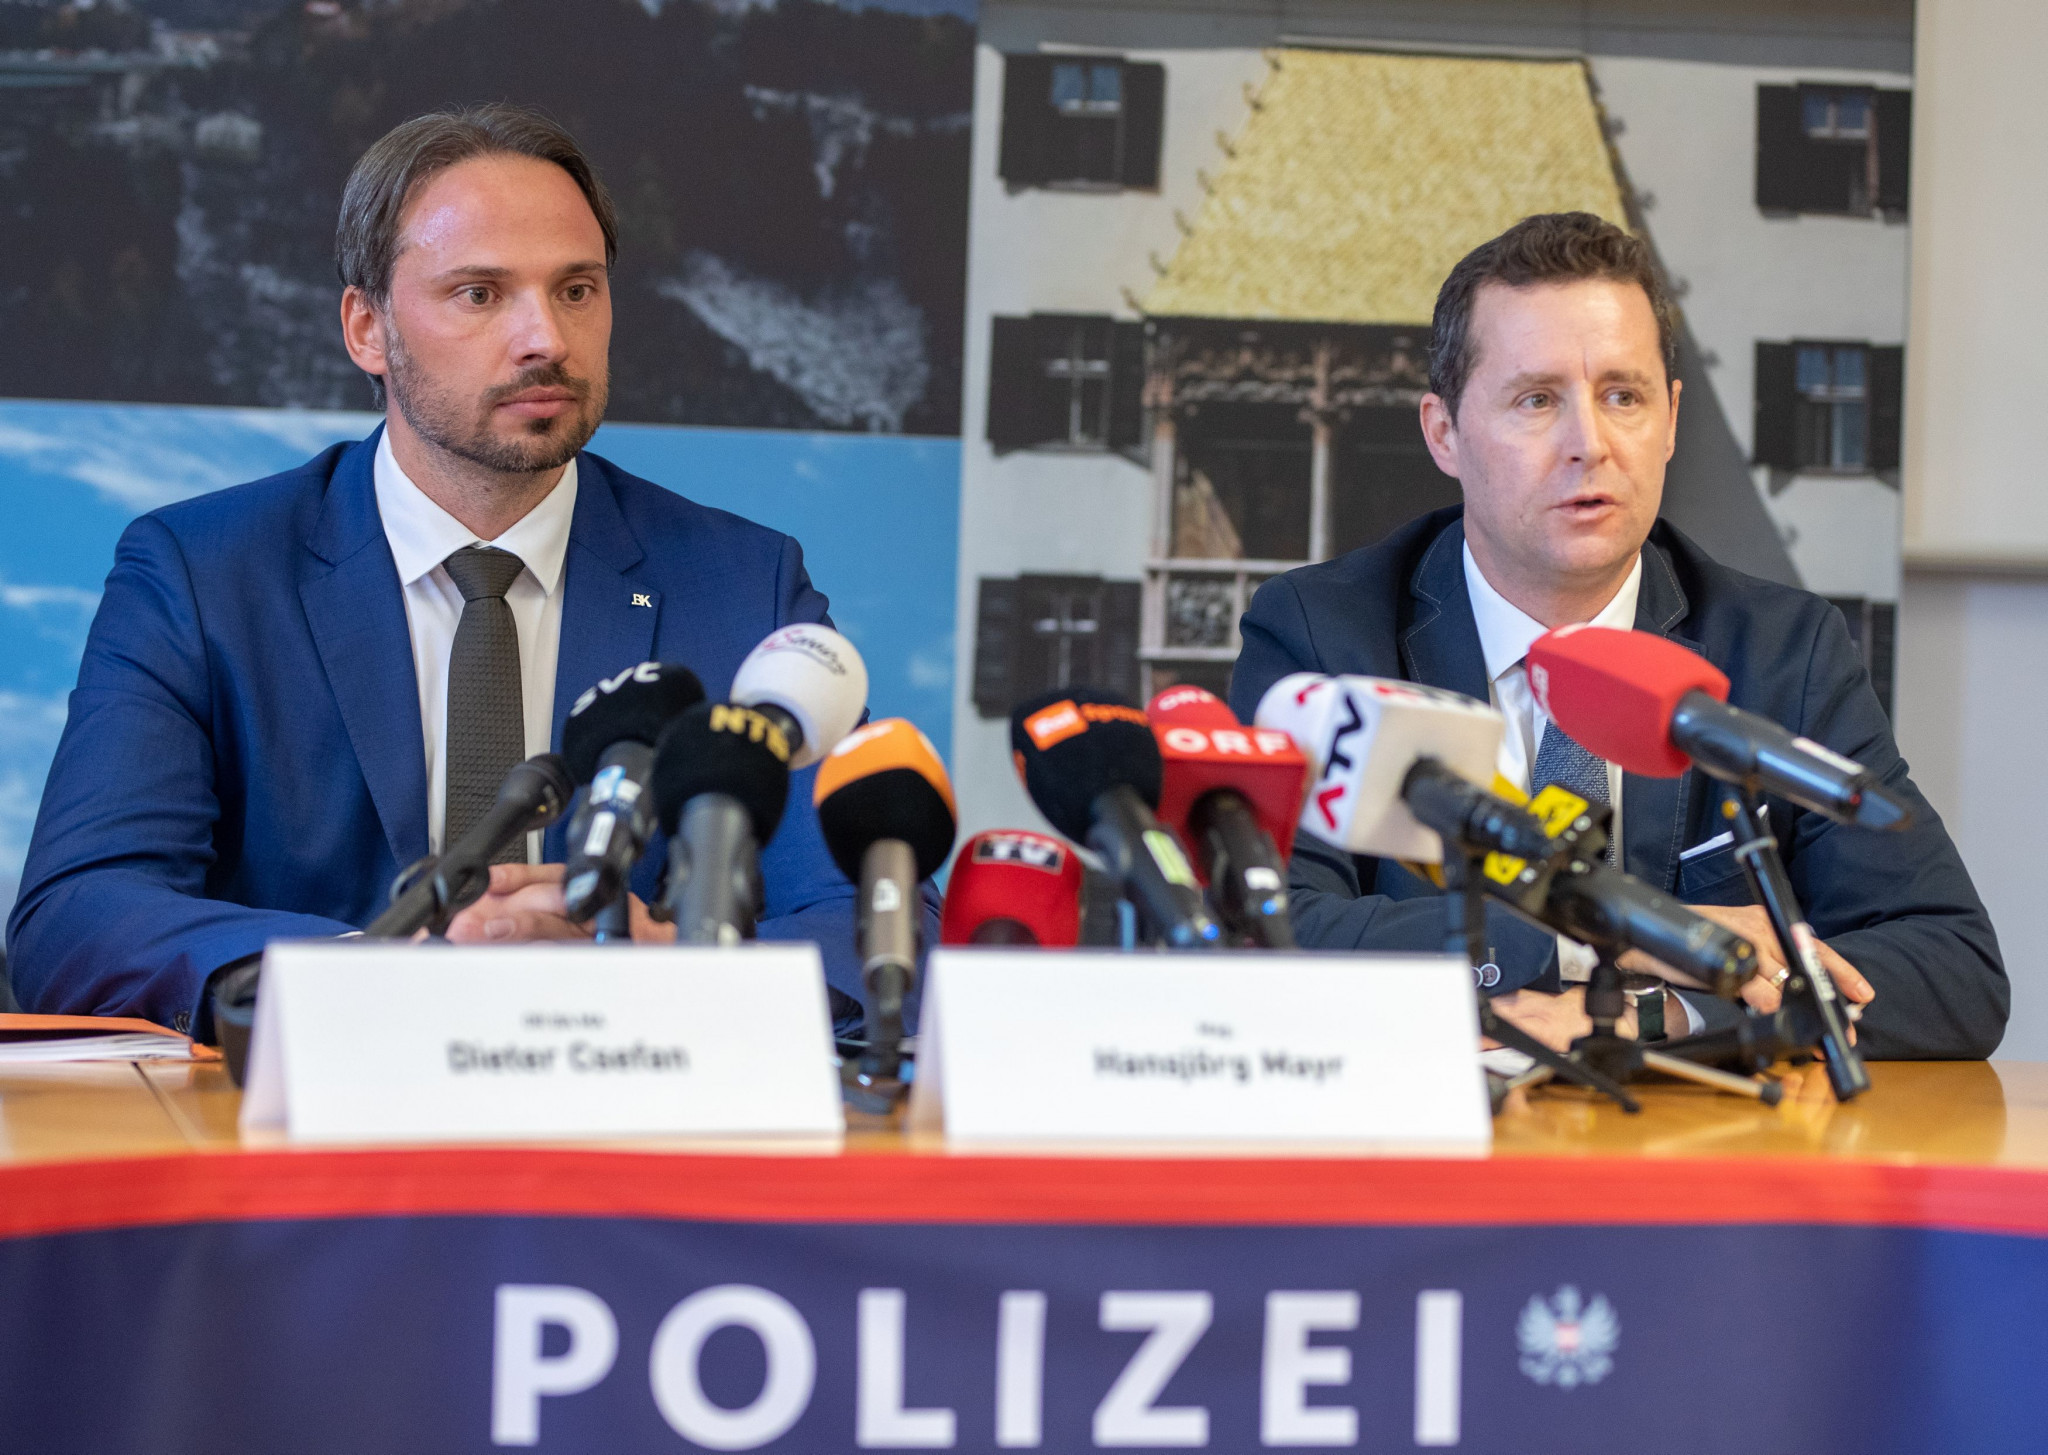 Dieter Csefan, left, said one of the five total athletes arrested had been caught